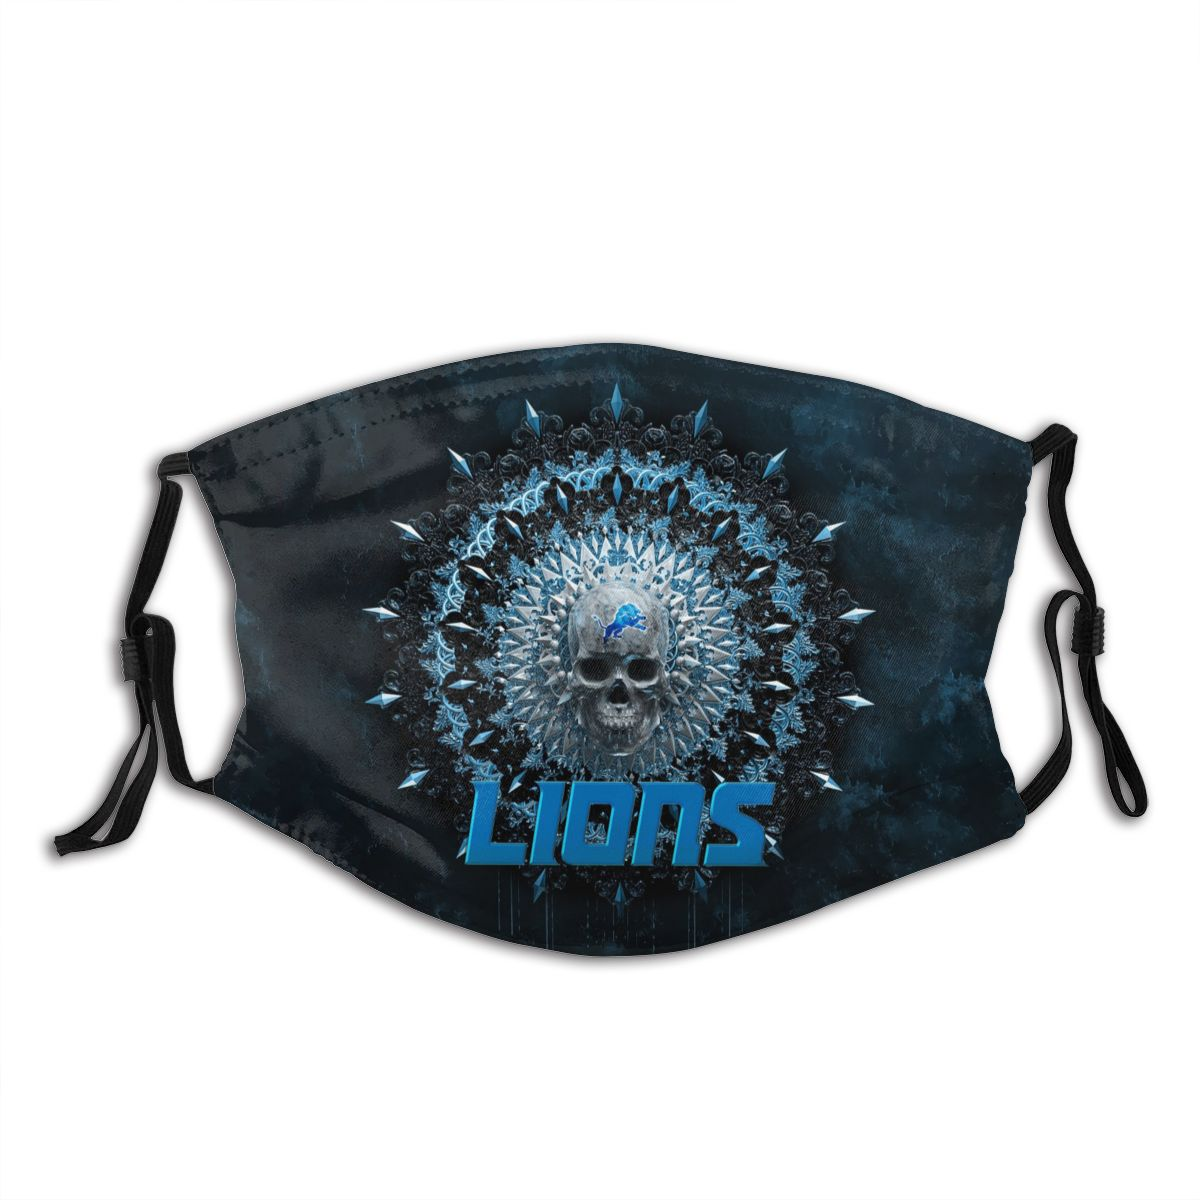 Lions Adult Cloth Face Covering With Filter